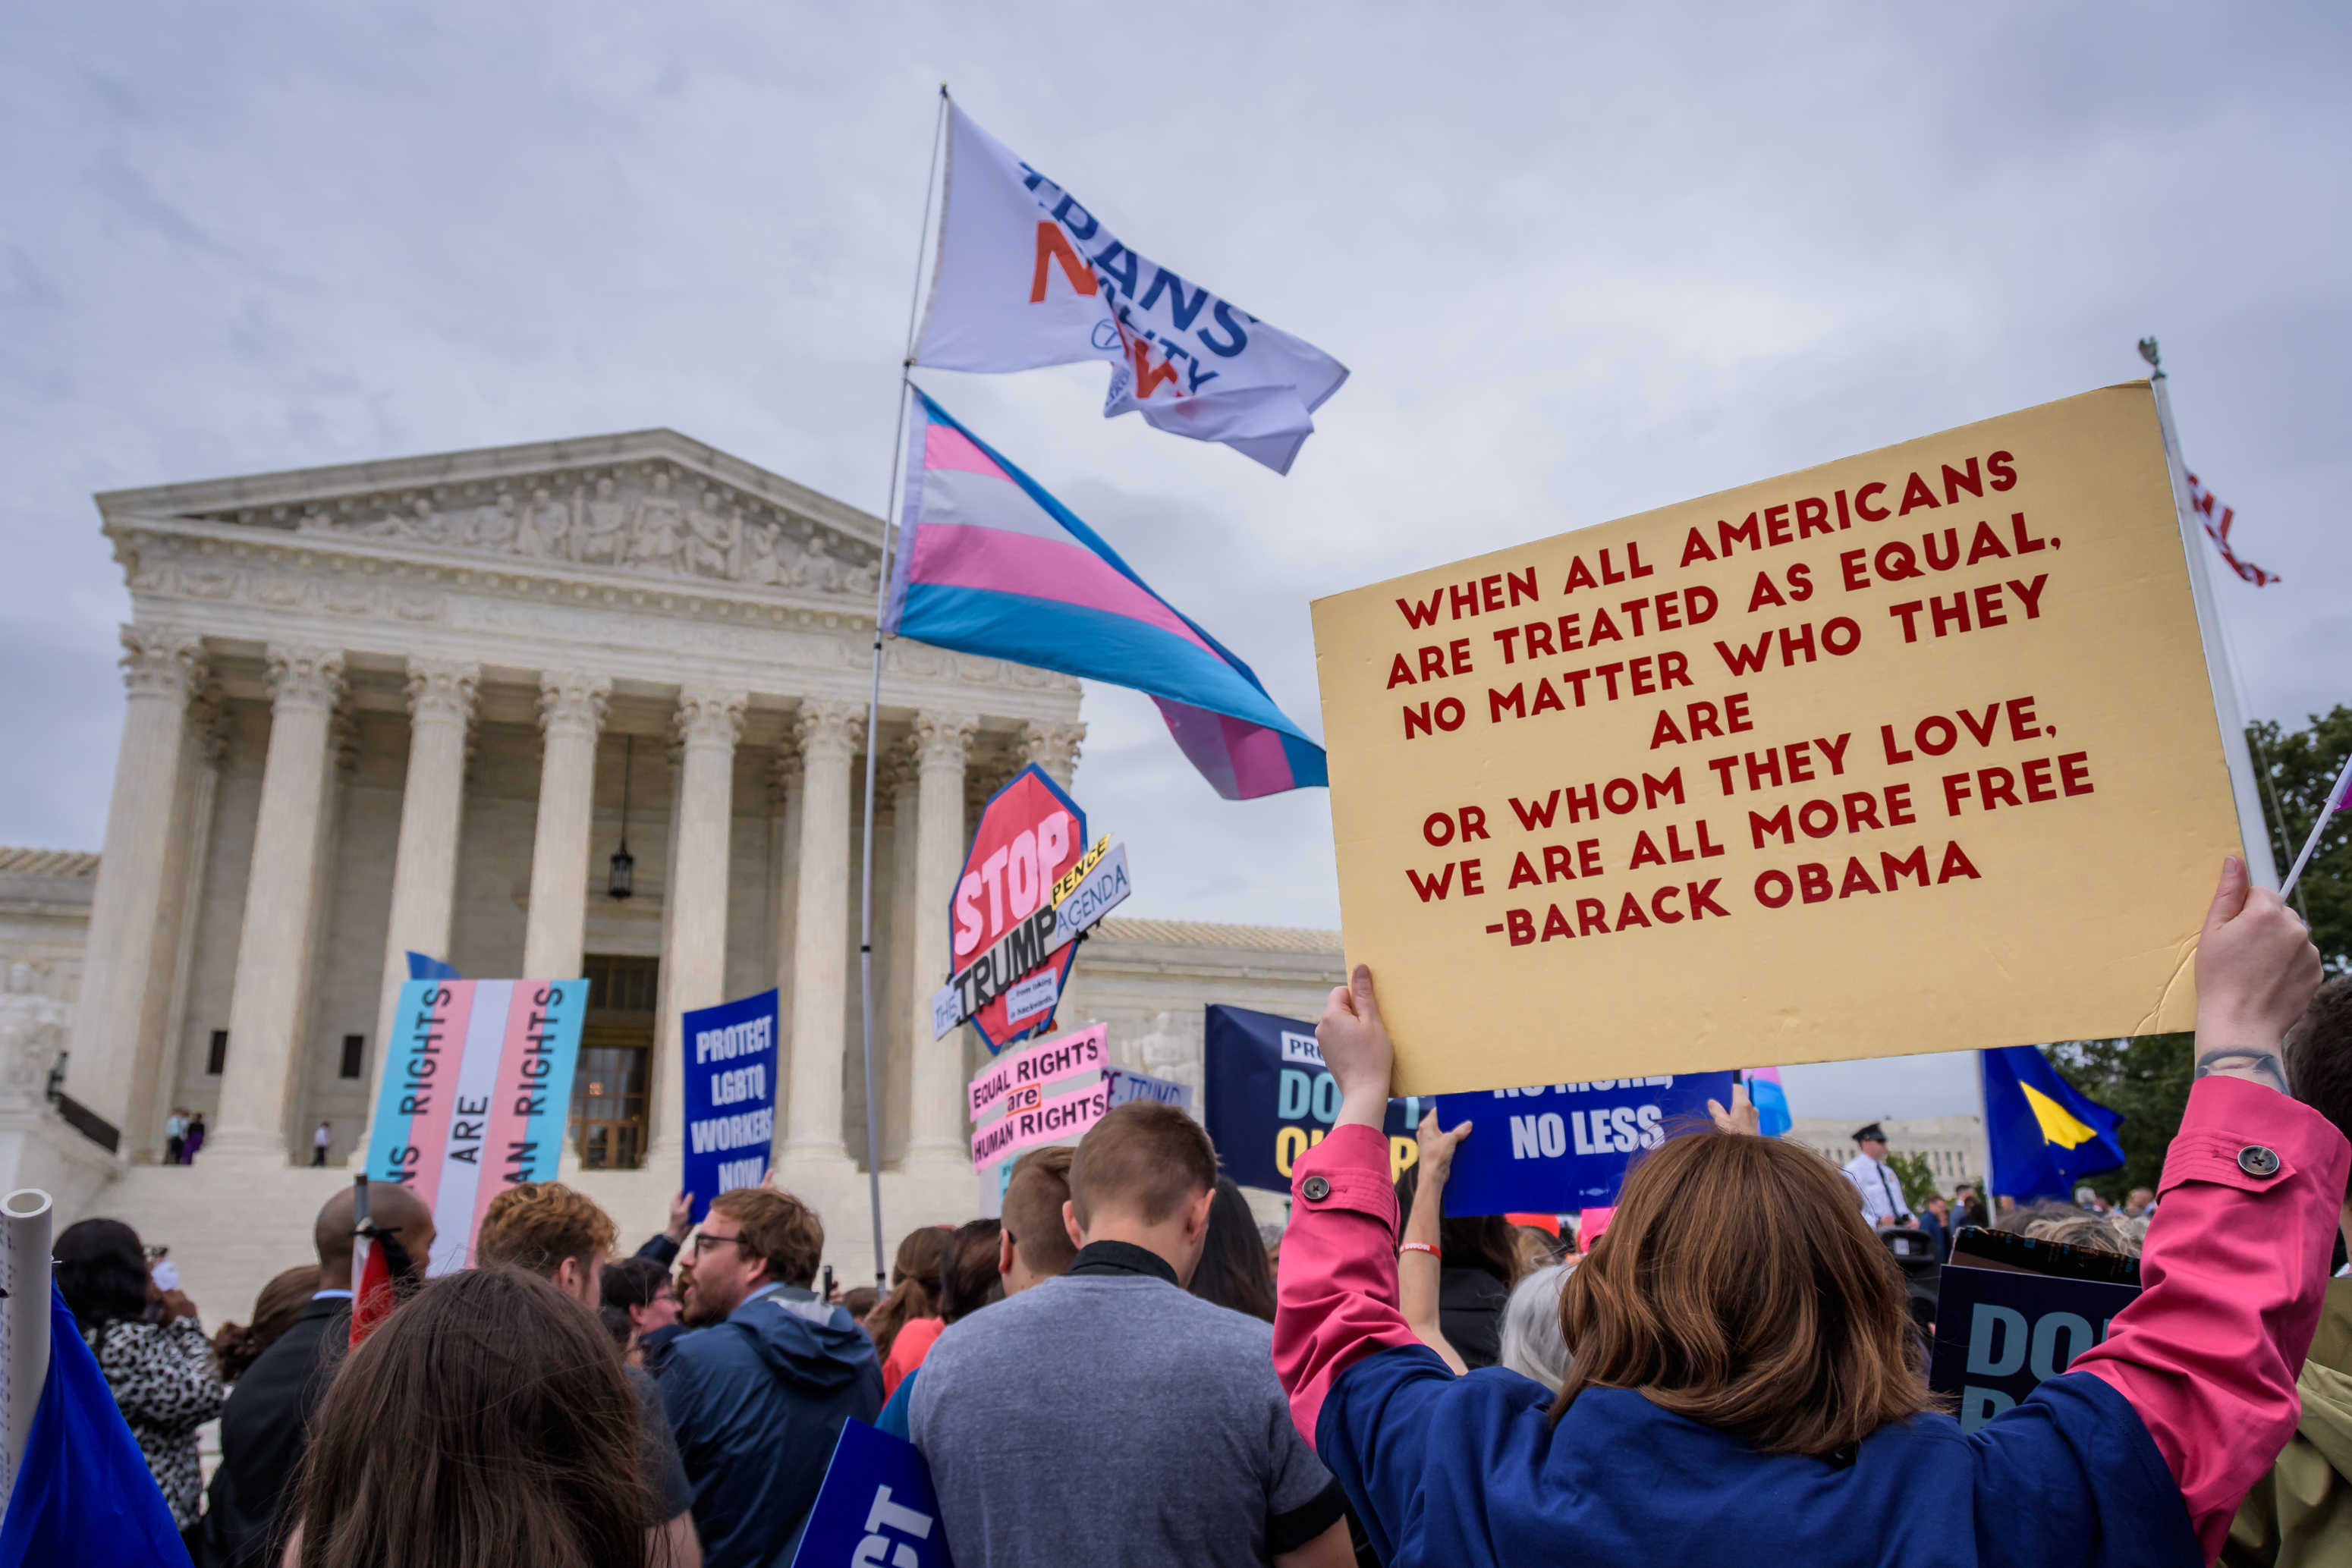 US: Protest at SCOTUS hearings on LGBTQ cases